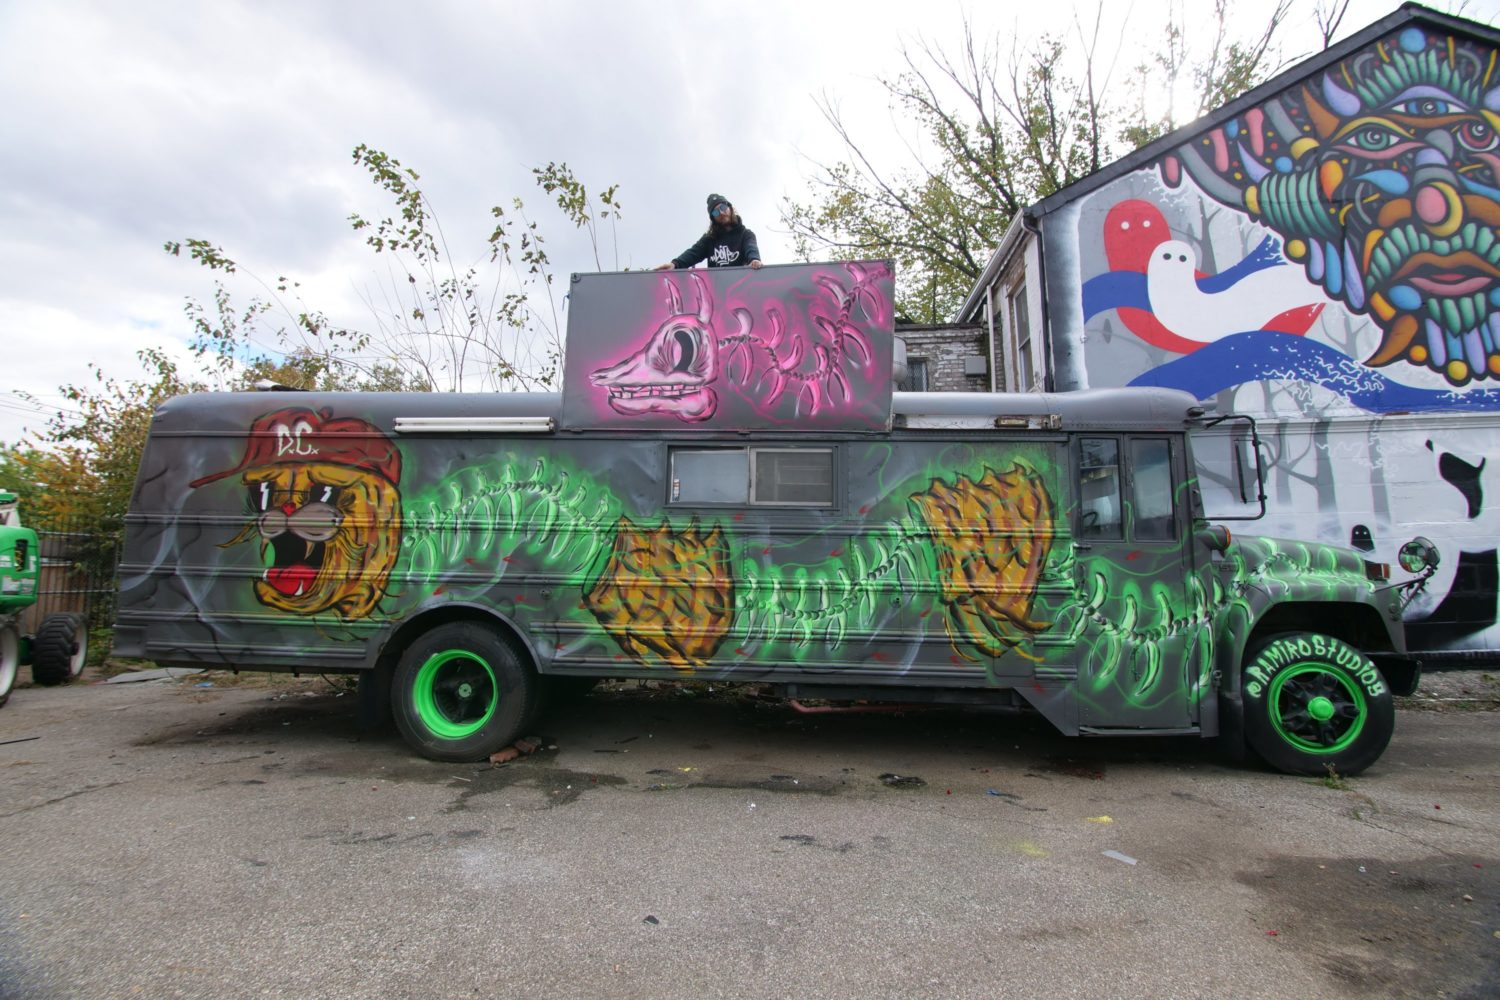 The painted bus that inspired the name, Electric Kool-Aid. Photograph by Lisa Bolden.